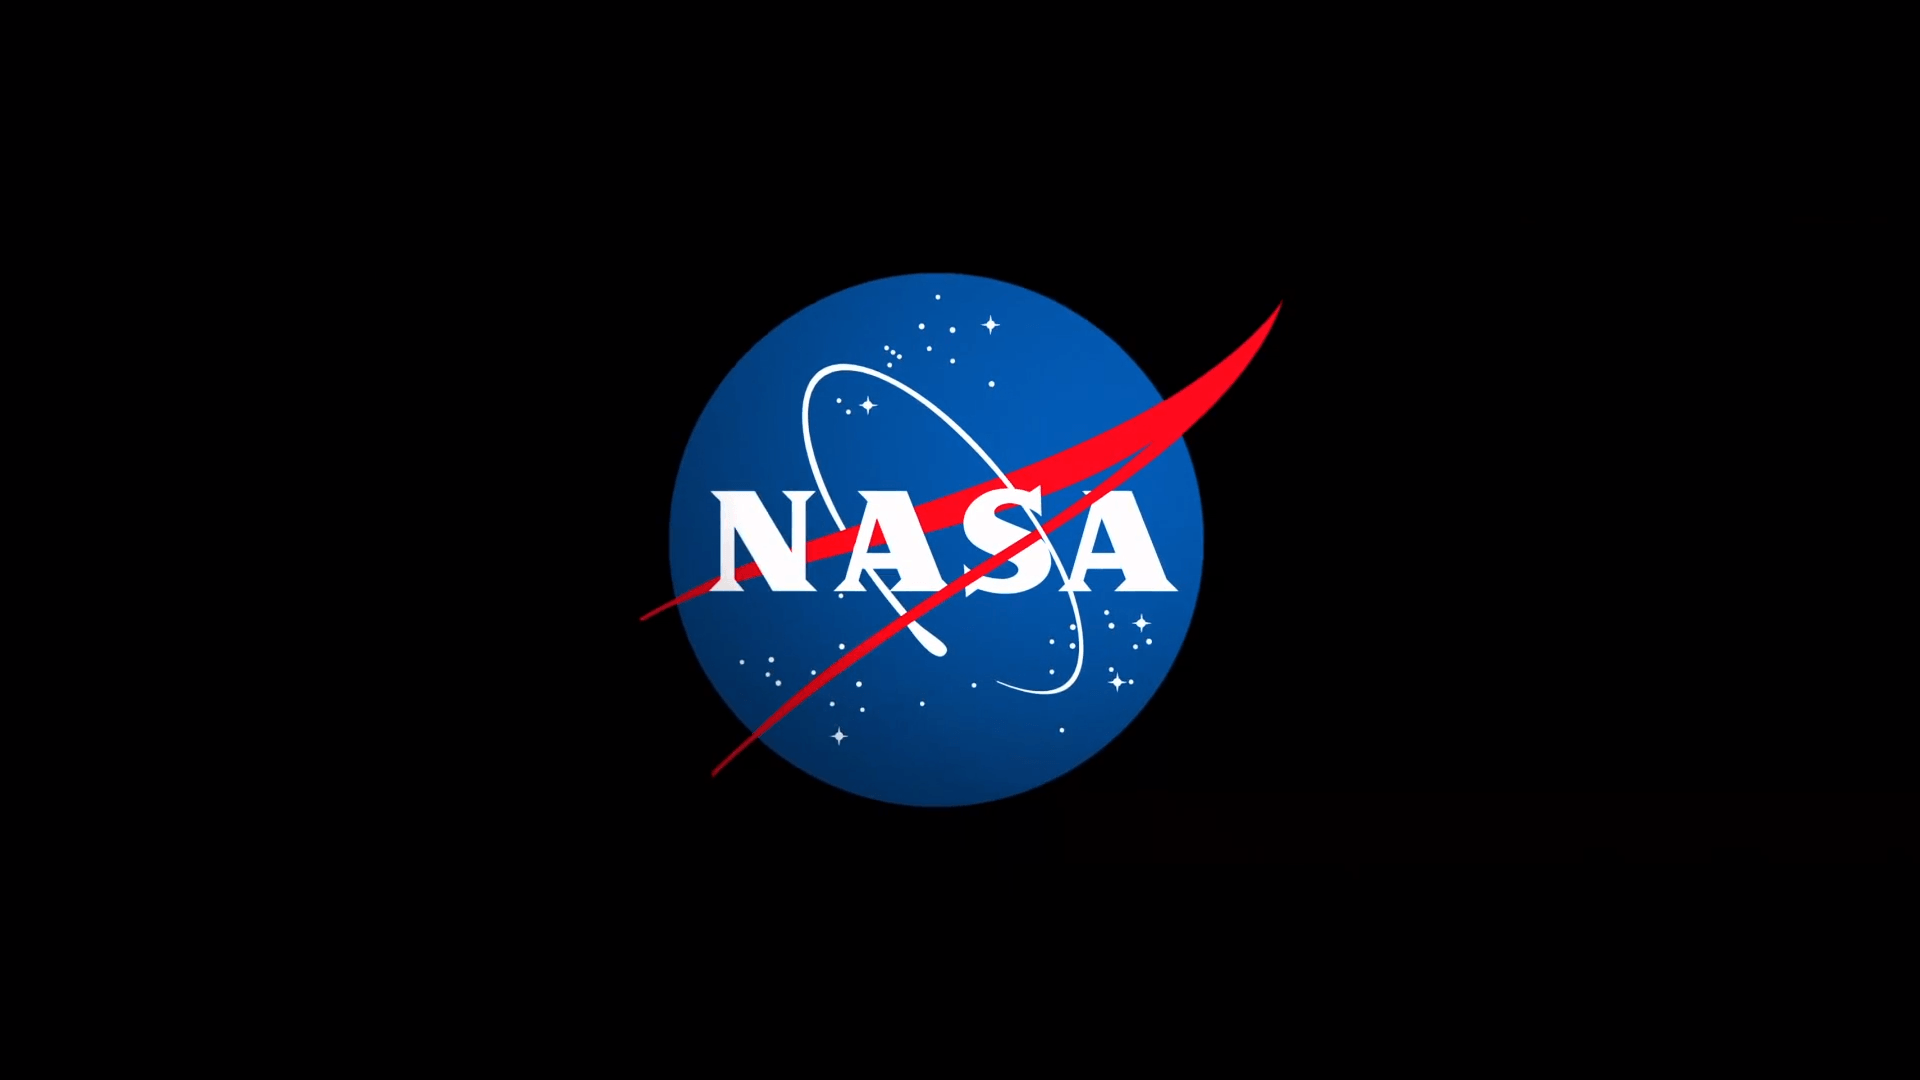 Nasa Wallpaper Desktop